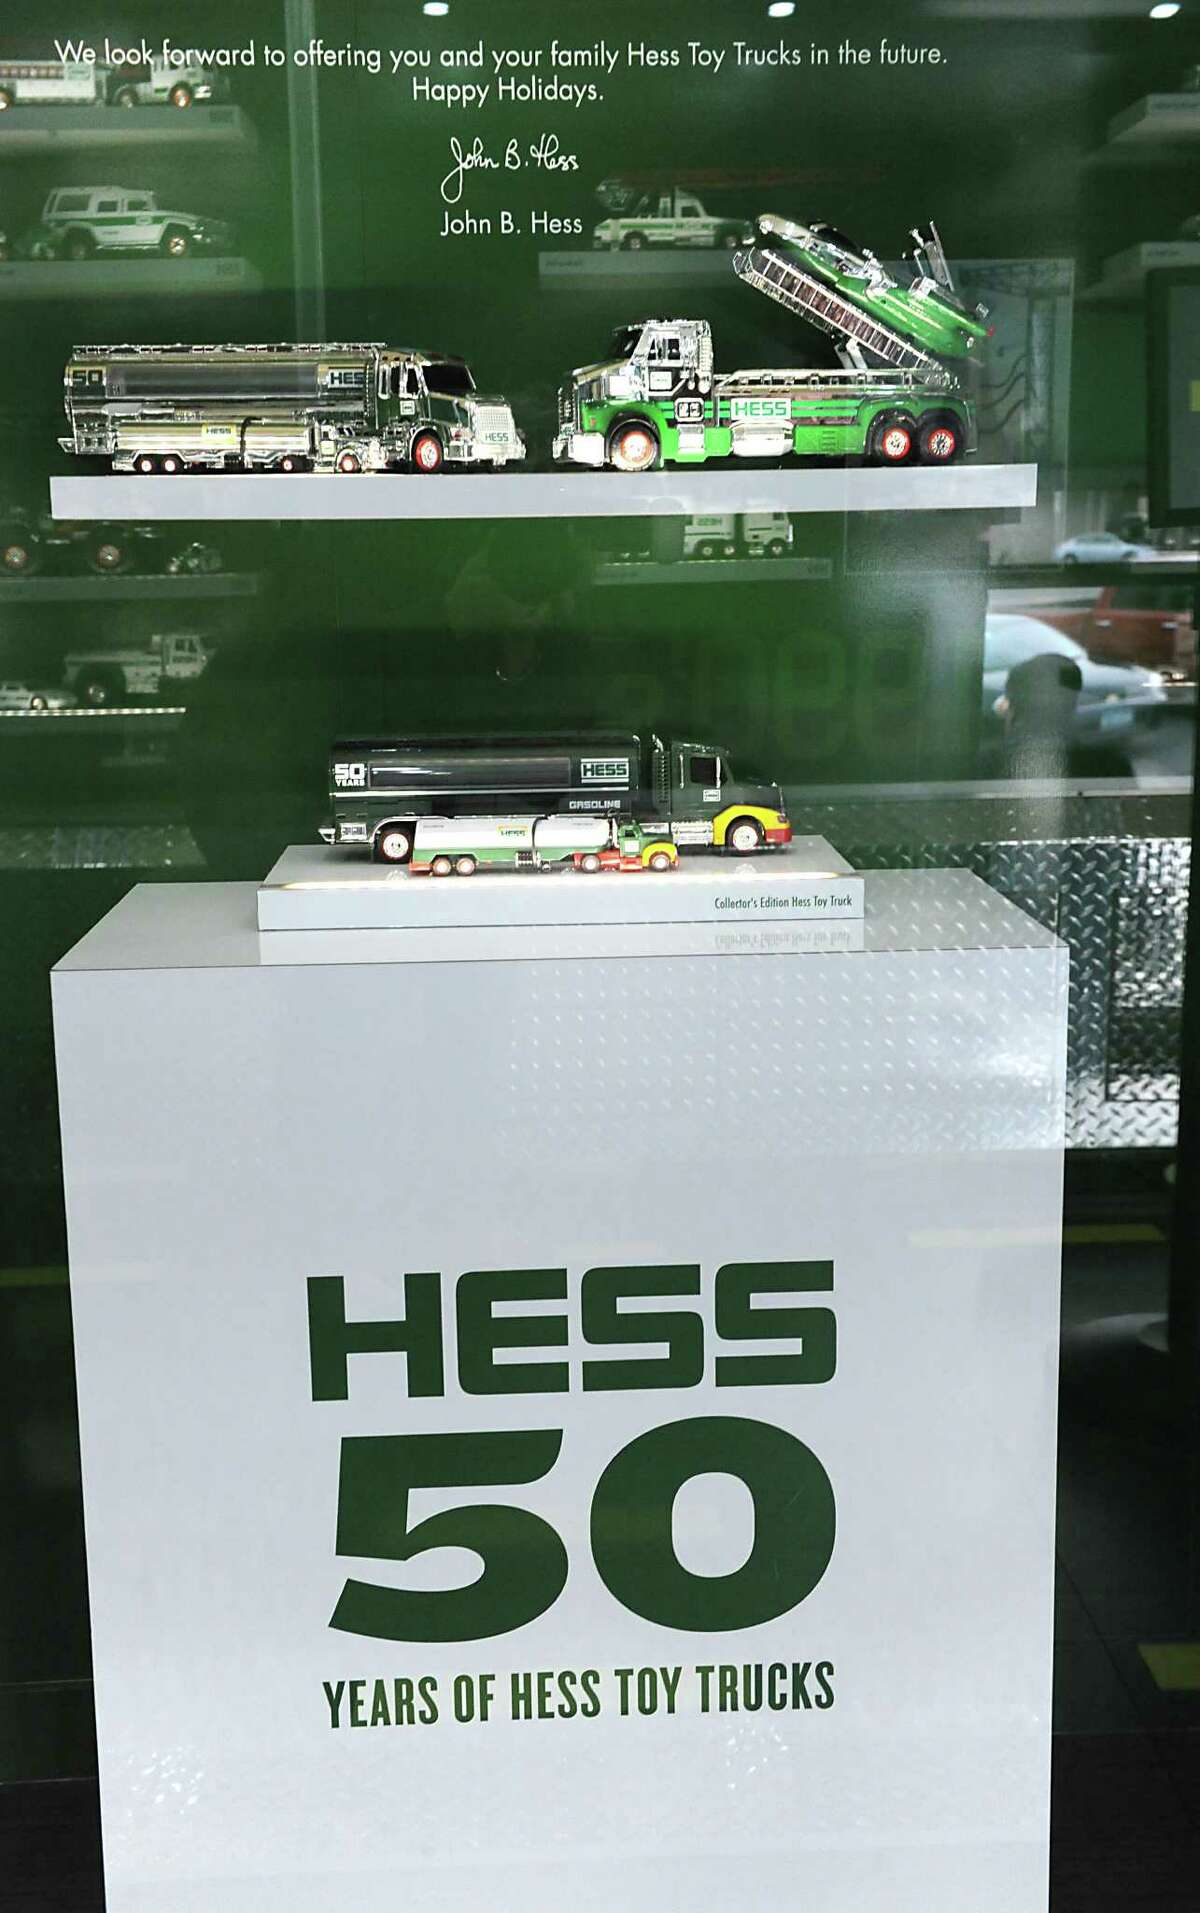 Hess celebrates the 50th anniversary of the Hess Toy Truck with a first-ever Mobile Museum at the Hess Express on Wednesday, Nov. 5, 2014 in Rotterdam, N.Y. (Lori Van Buren / Times Union)